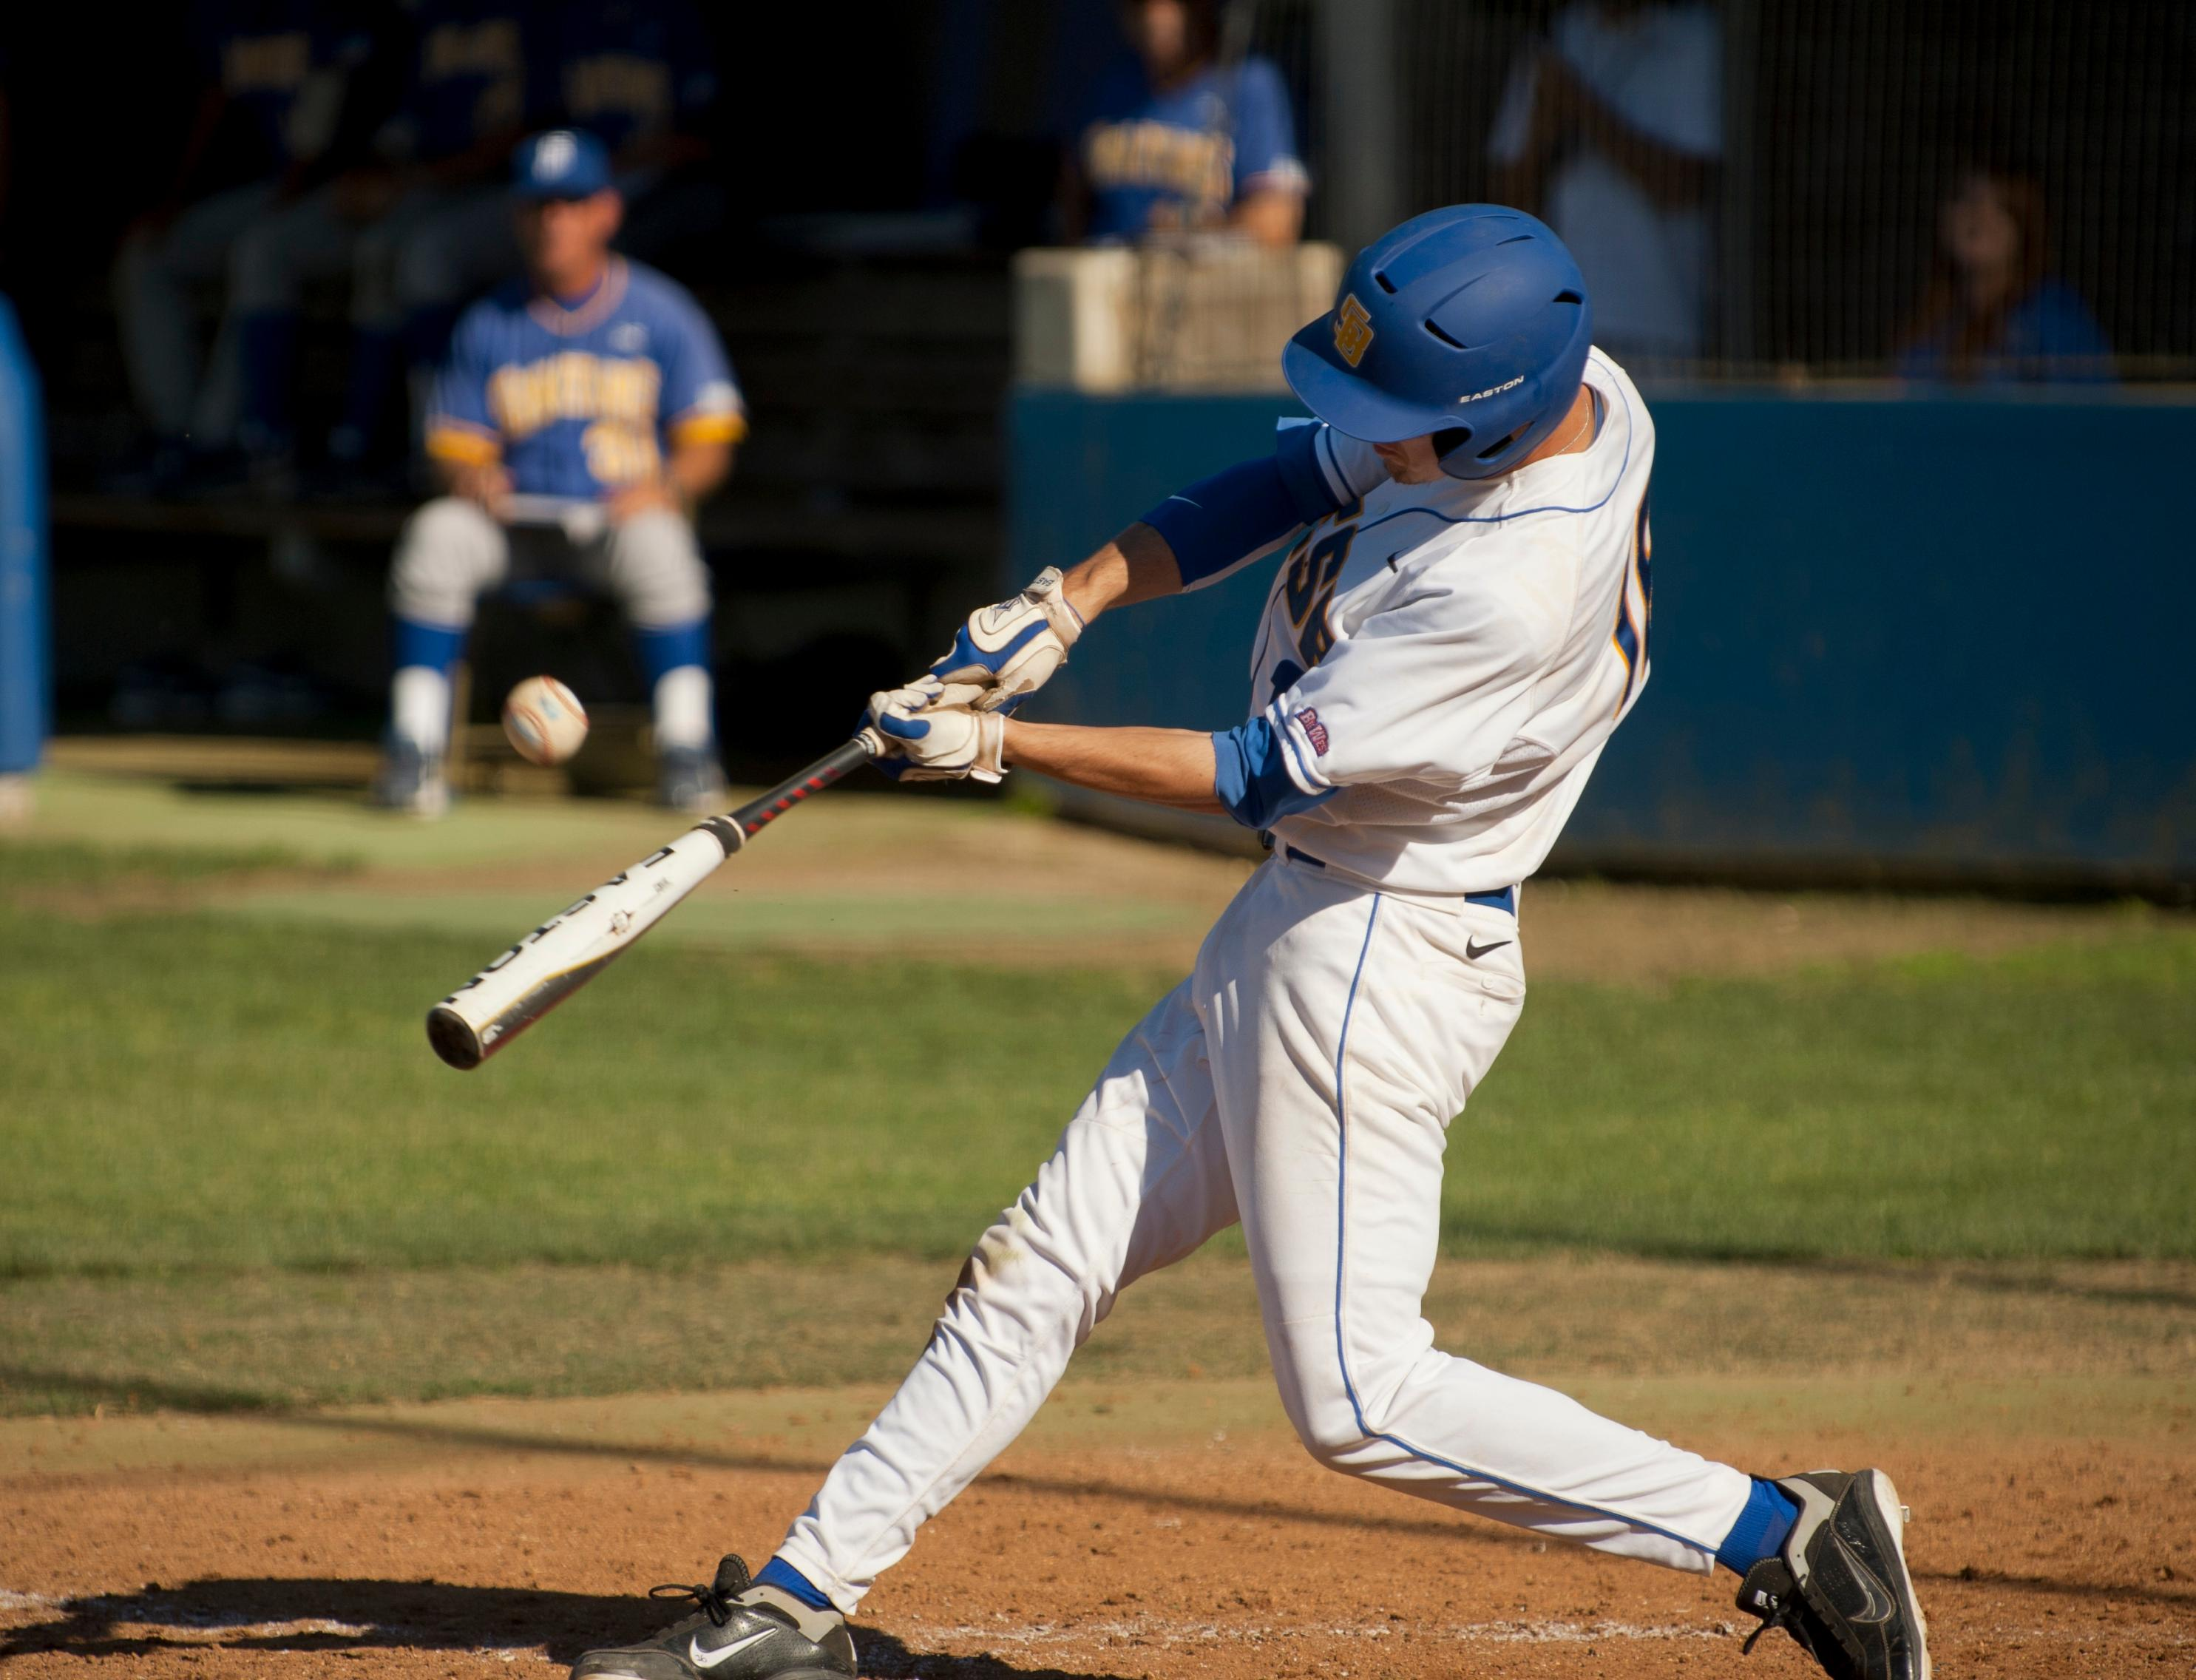 Gauchos Drop Game One of Doubleheader, Game Two to be Completed Sunday